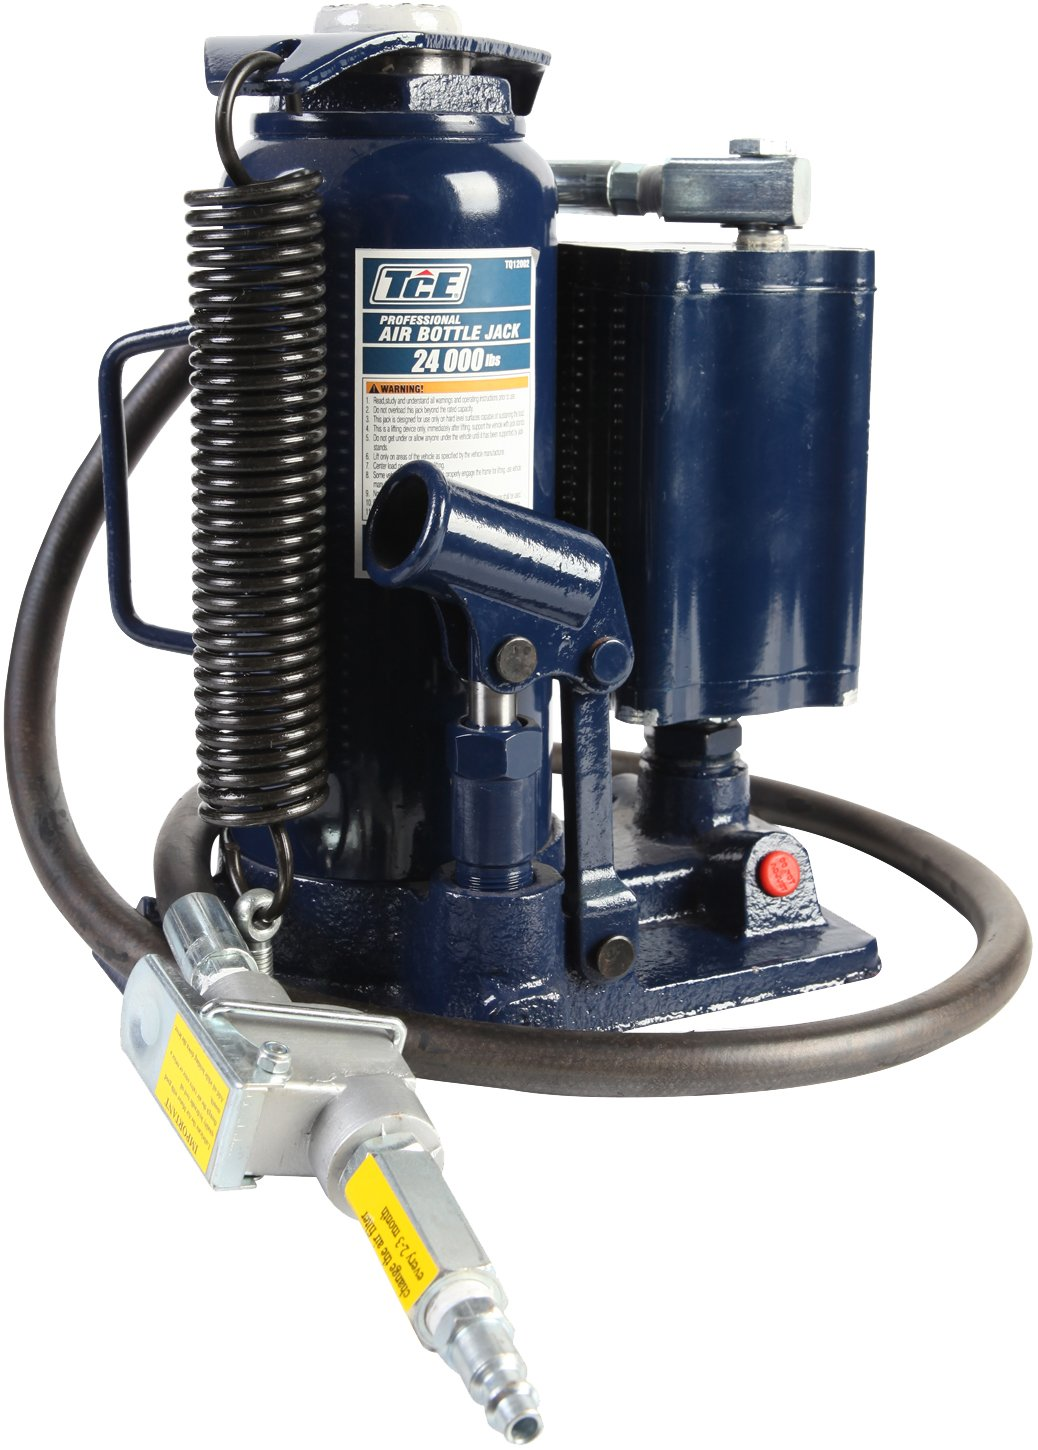 TCE Professional Grade Air Hydraulic Bottle Jack, 12 Ton Capacity